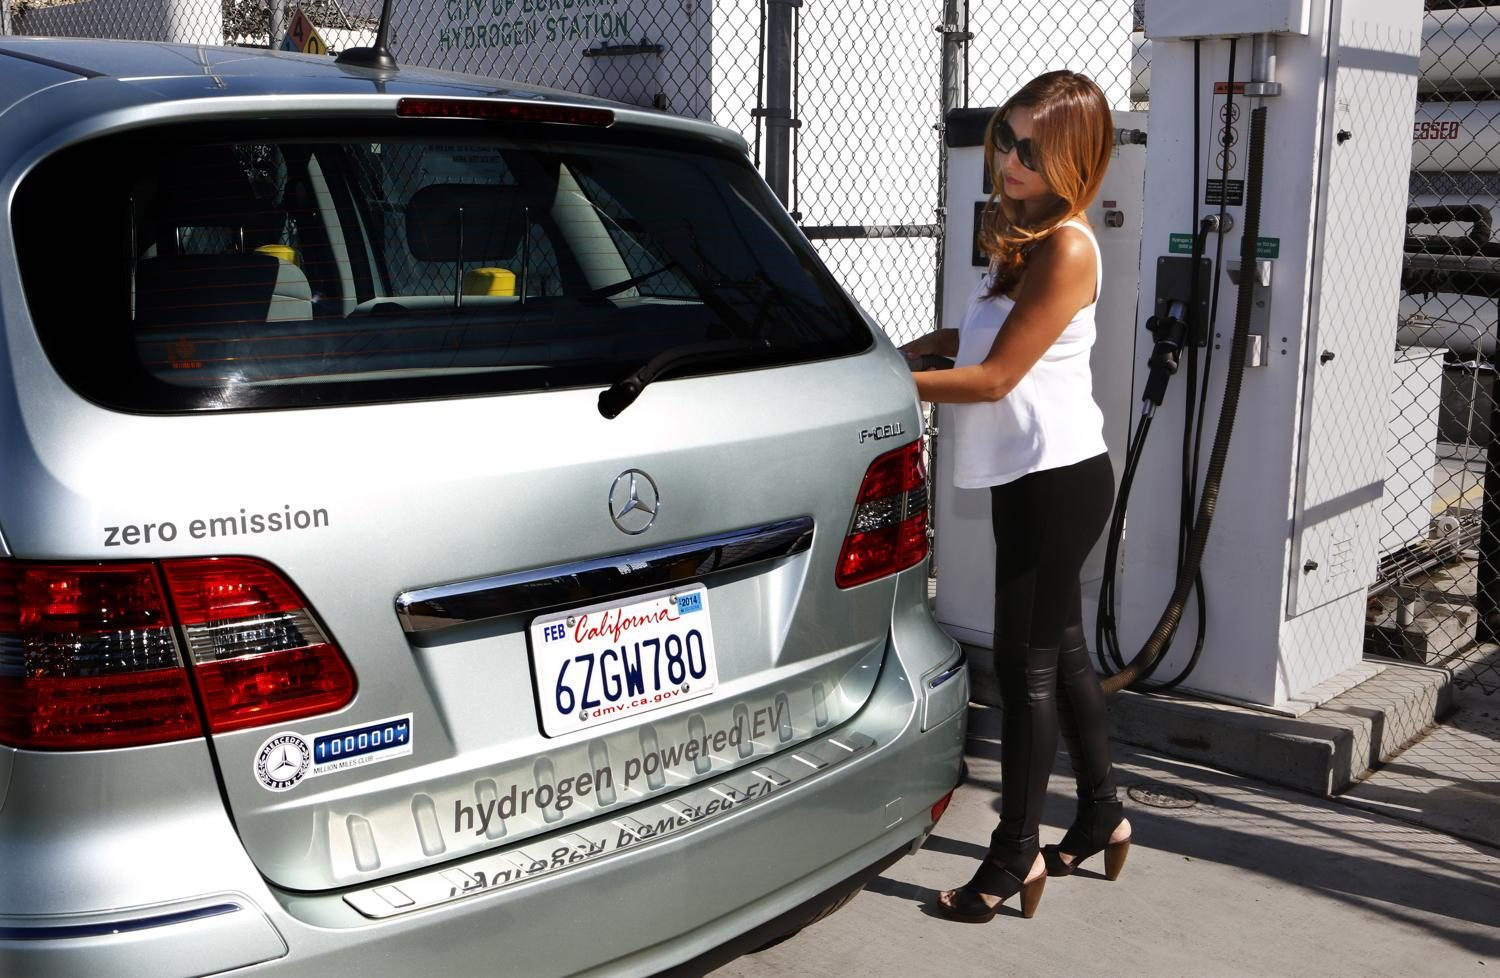 Sally+Poppe%2C+right%2C+demonstrates+filling+her+car+at+the+hydrogen+fuel+station+on+Oct.+21%2C+2014+at+Hydrogen+Frontier+Inc.+in+Burbank%2C+Calif.%2C+owned+by+her+husband+Dan+Poppe%2C+left.+Automakers+are+turning+to+another+new+technology+-+hydrogen+fuel+cells+that+have+zero+emissions.